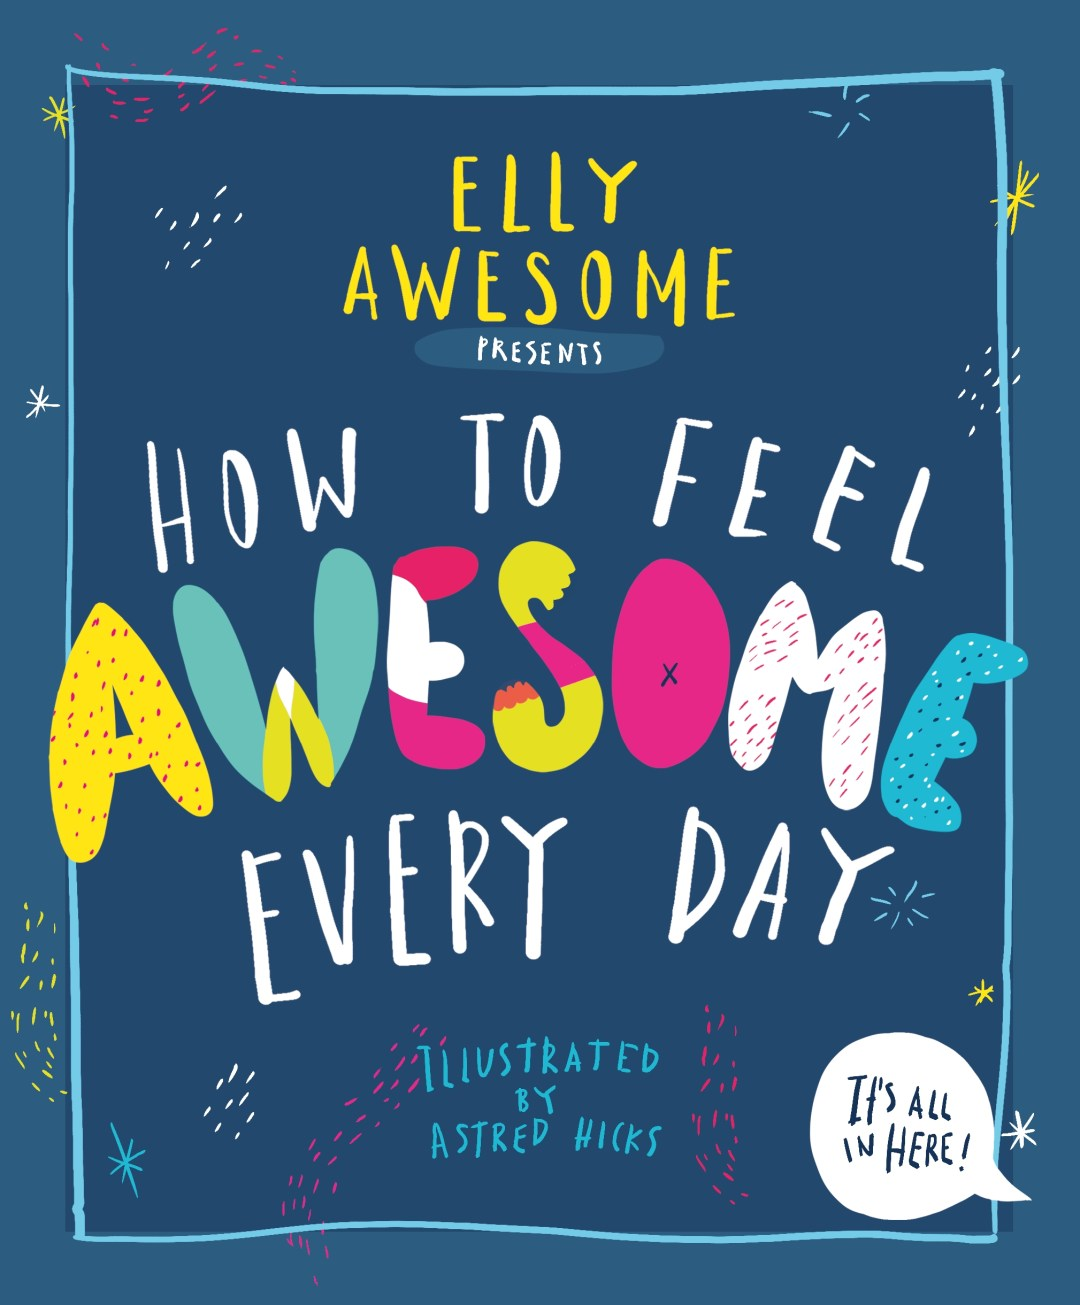 Book Cover Image for How to feel awesome every day